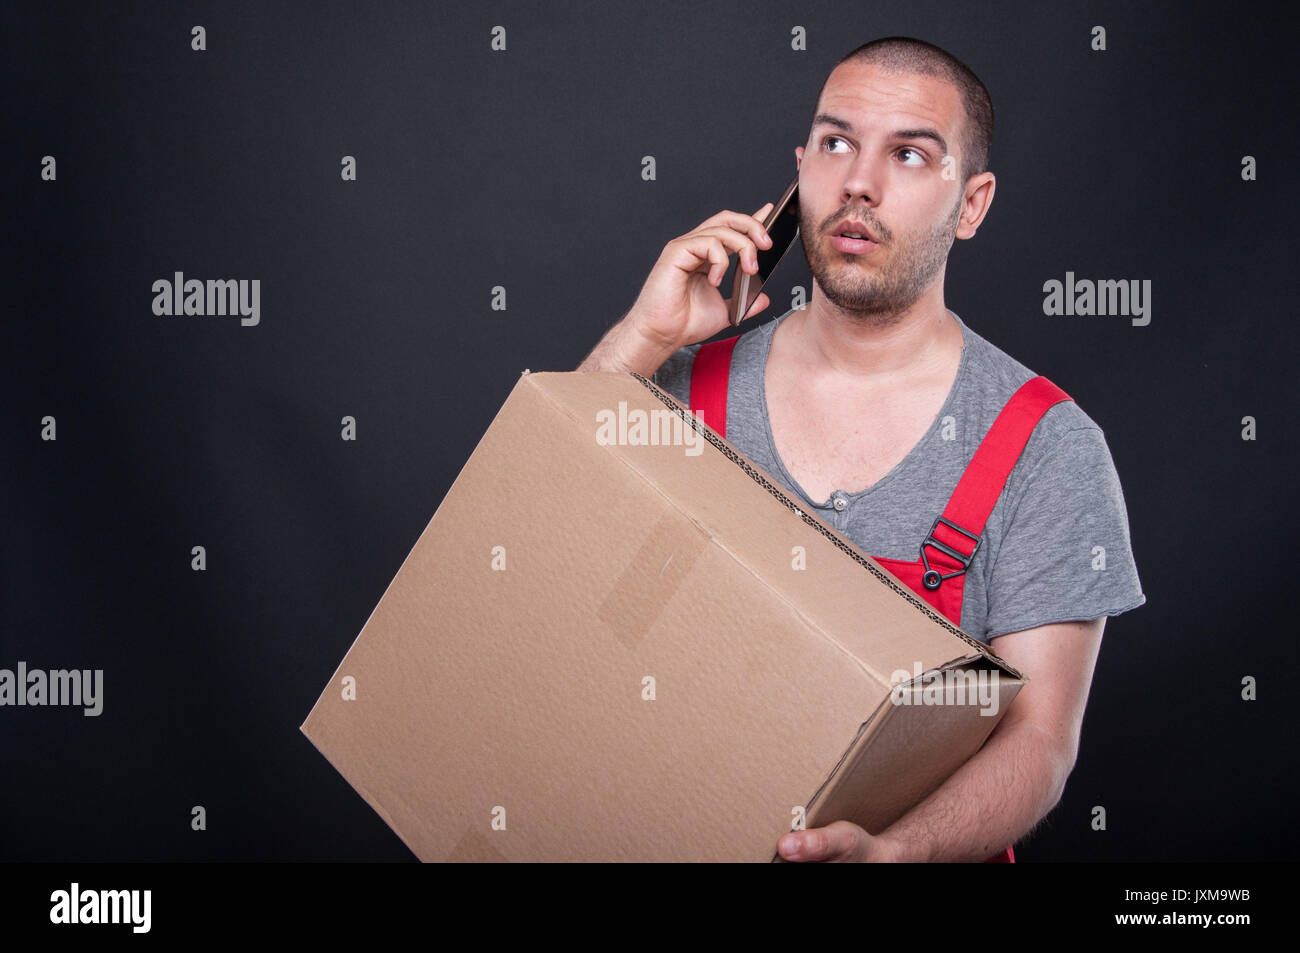 Mover man holding box talking on mobile phone on black background with copy space text - Stock Image